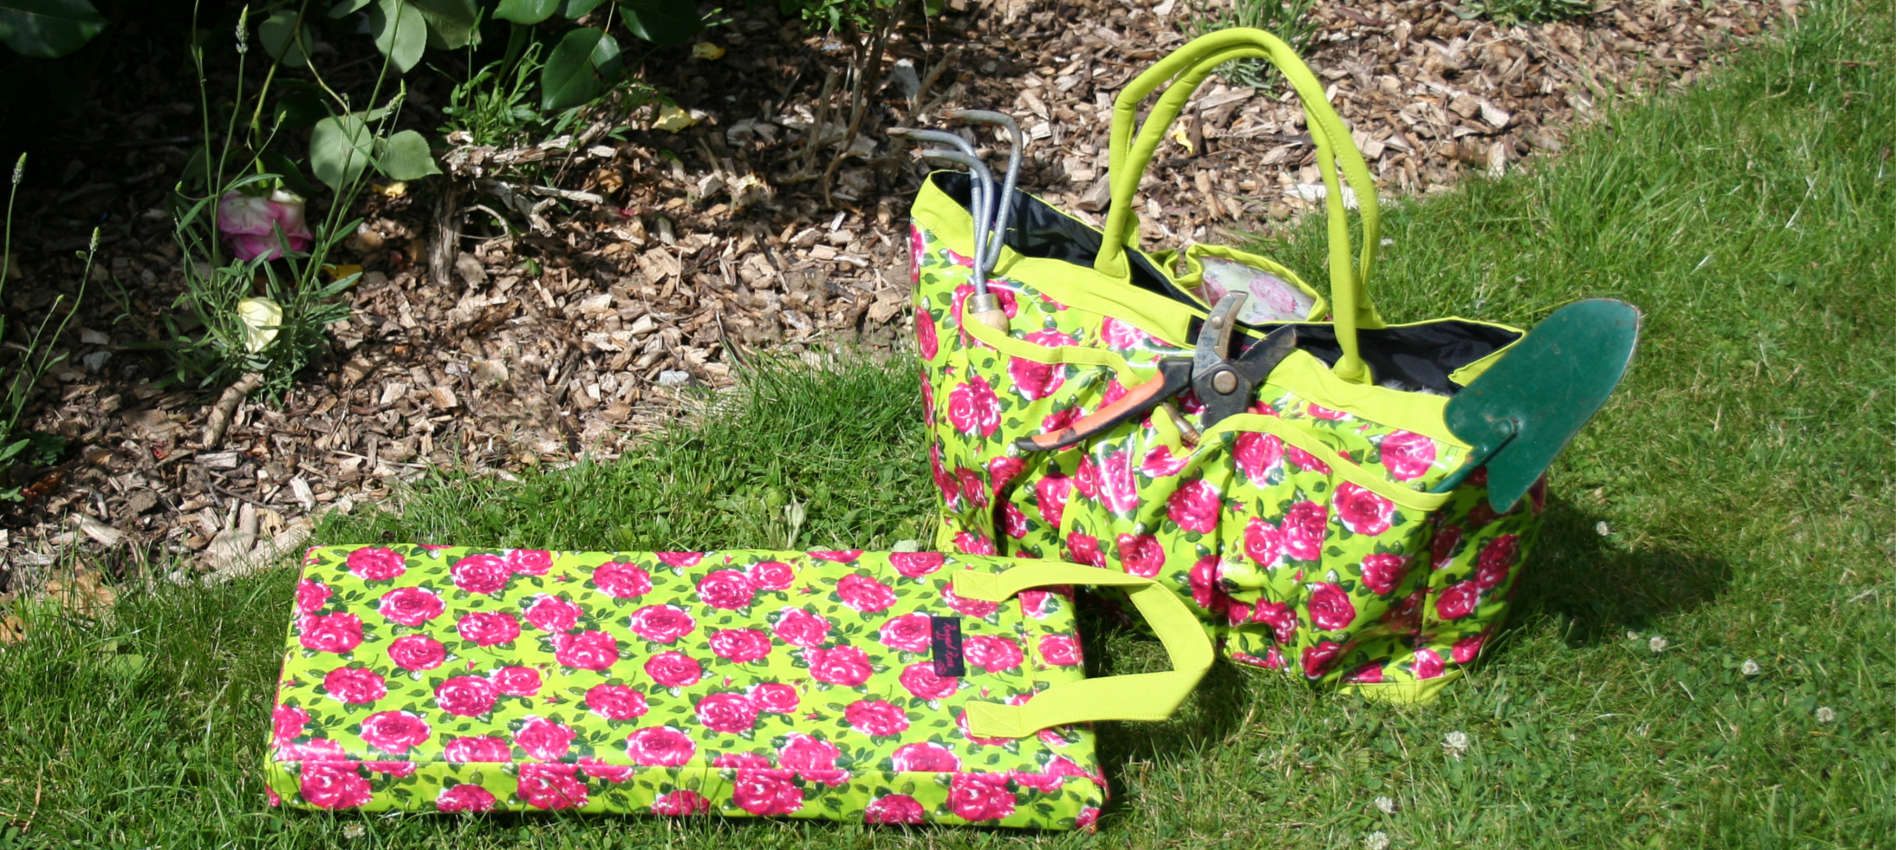 trudy garden bag and nelly garden kneeler in lime green